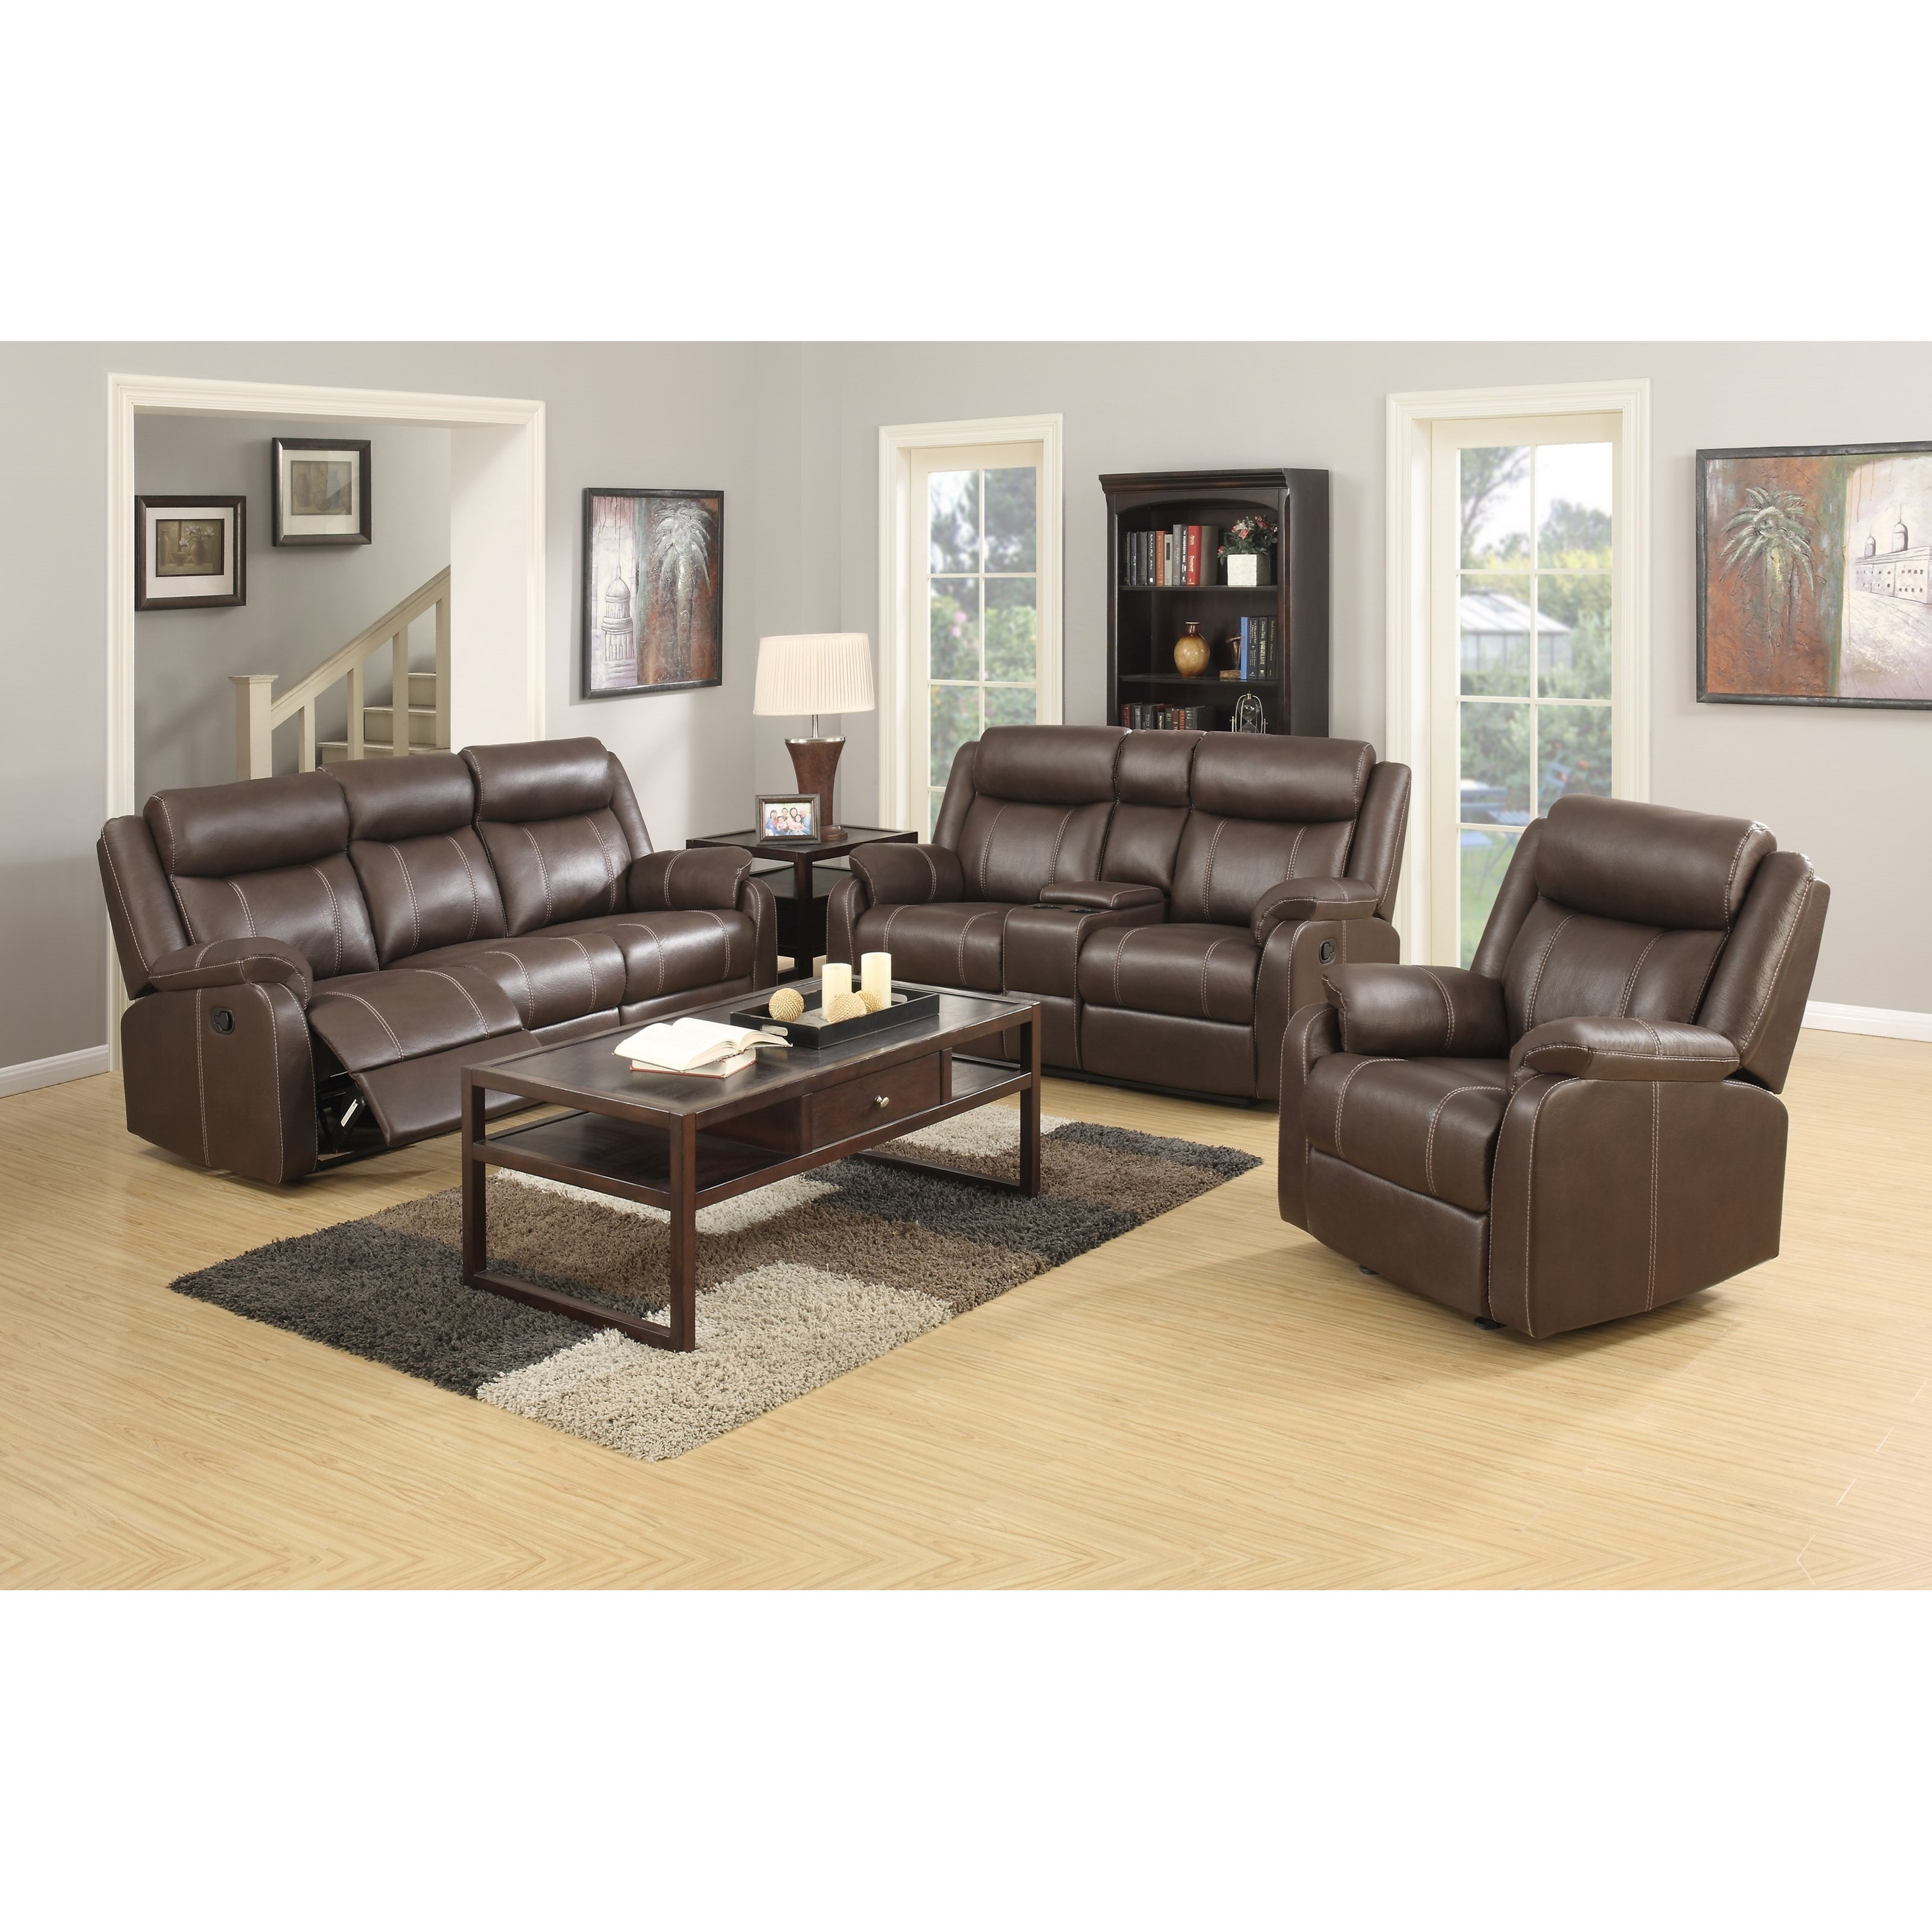 Domino-US Reclining Living Room Group by Klaussner International at Rooms for Less